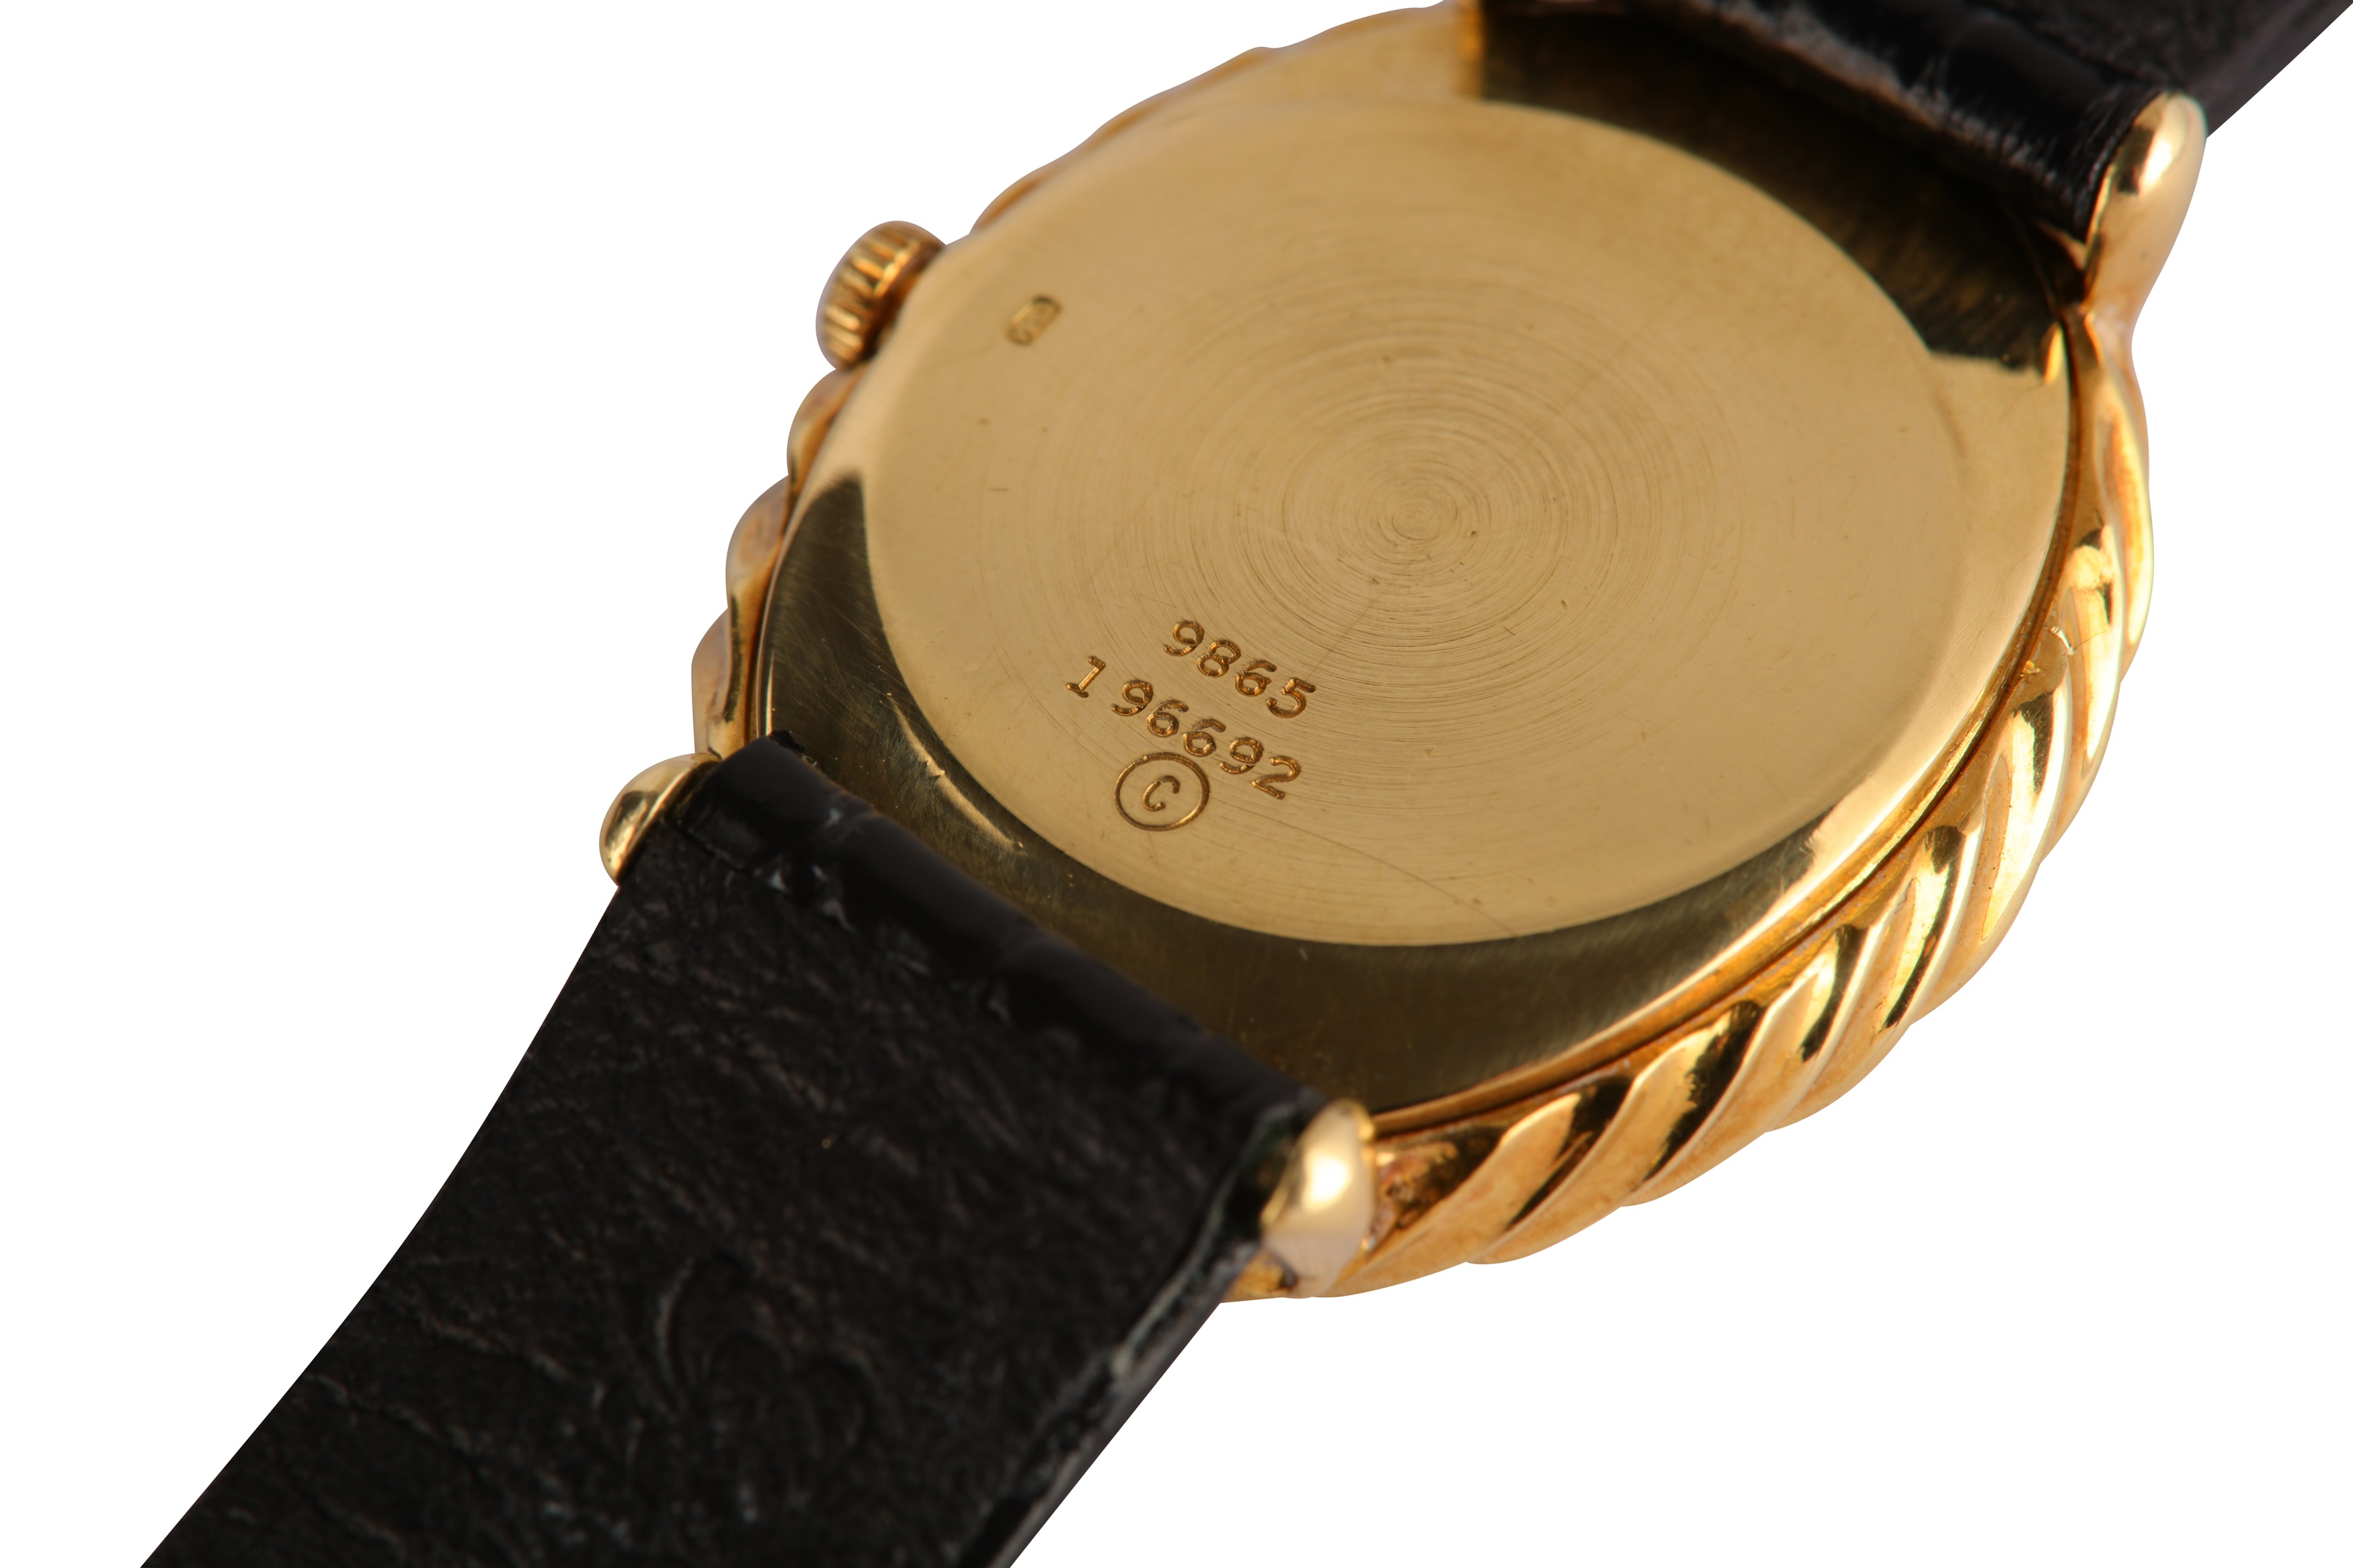 PIAGET. - Image 3 of 4